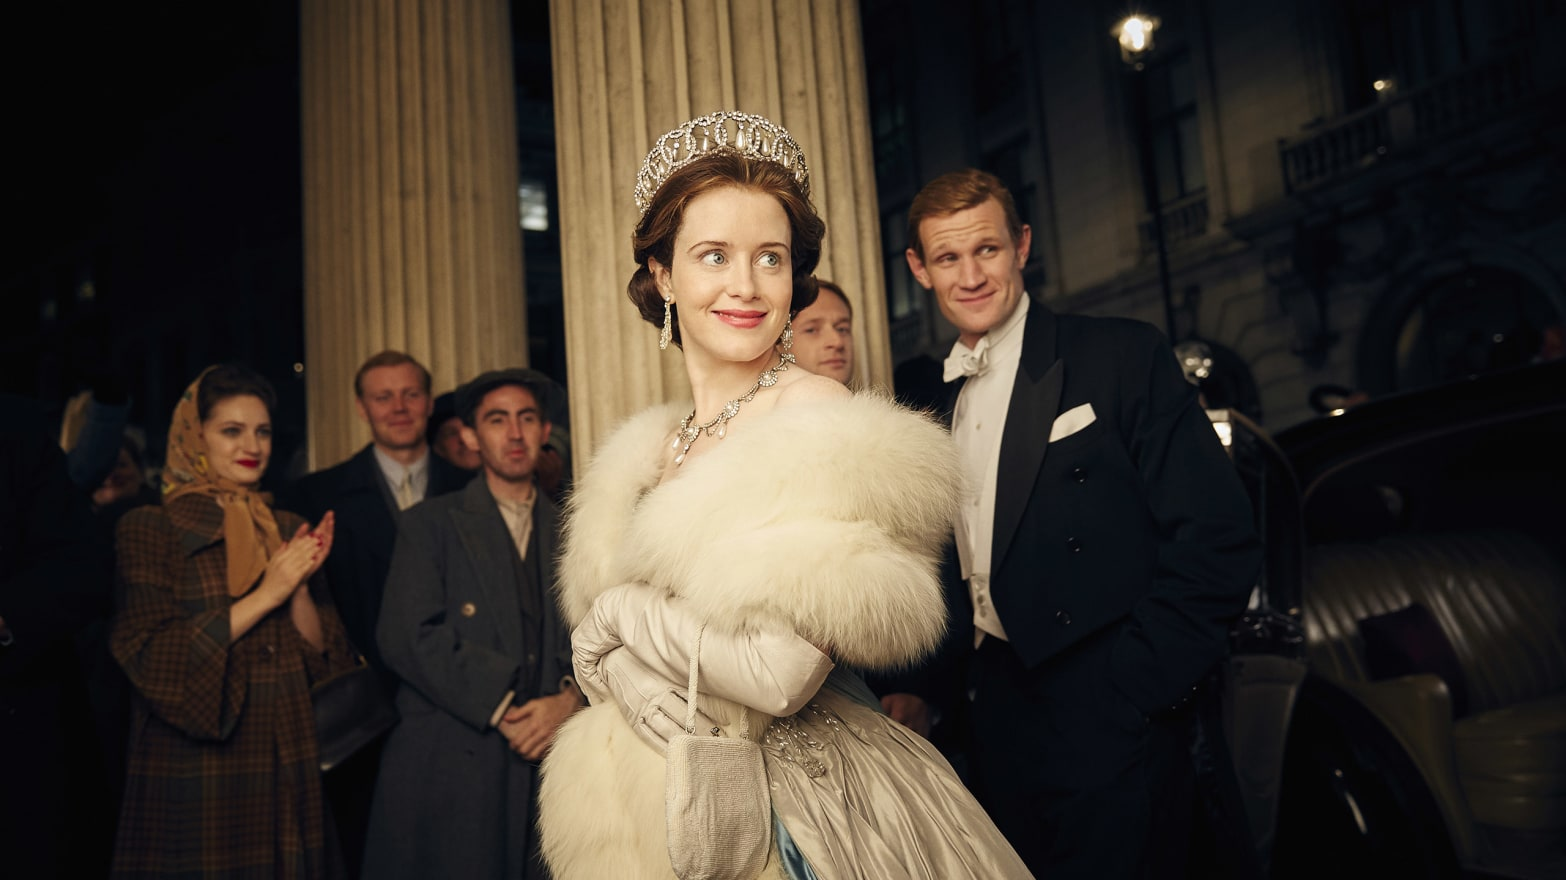 Inside Netflix's $130 Million 'The Crown,' the Most Expensive TV